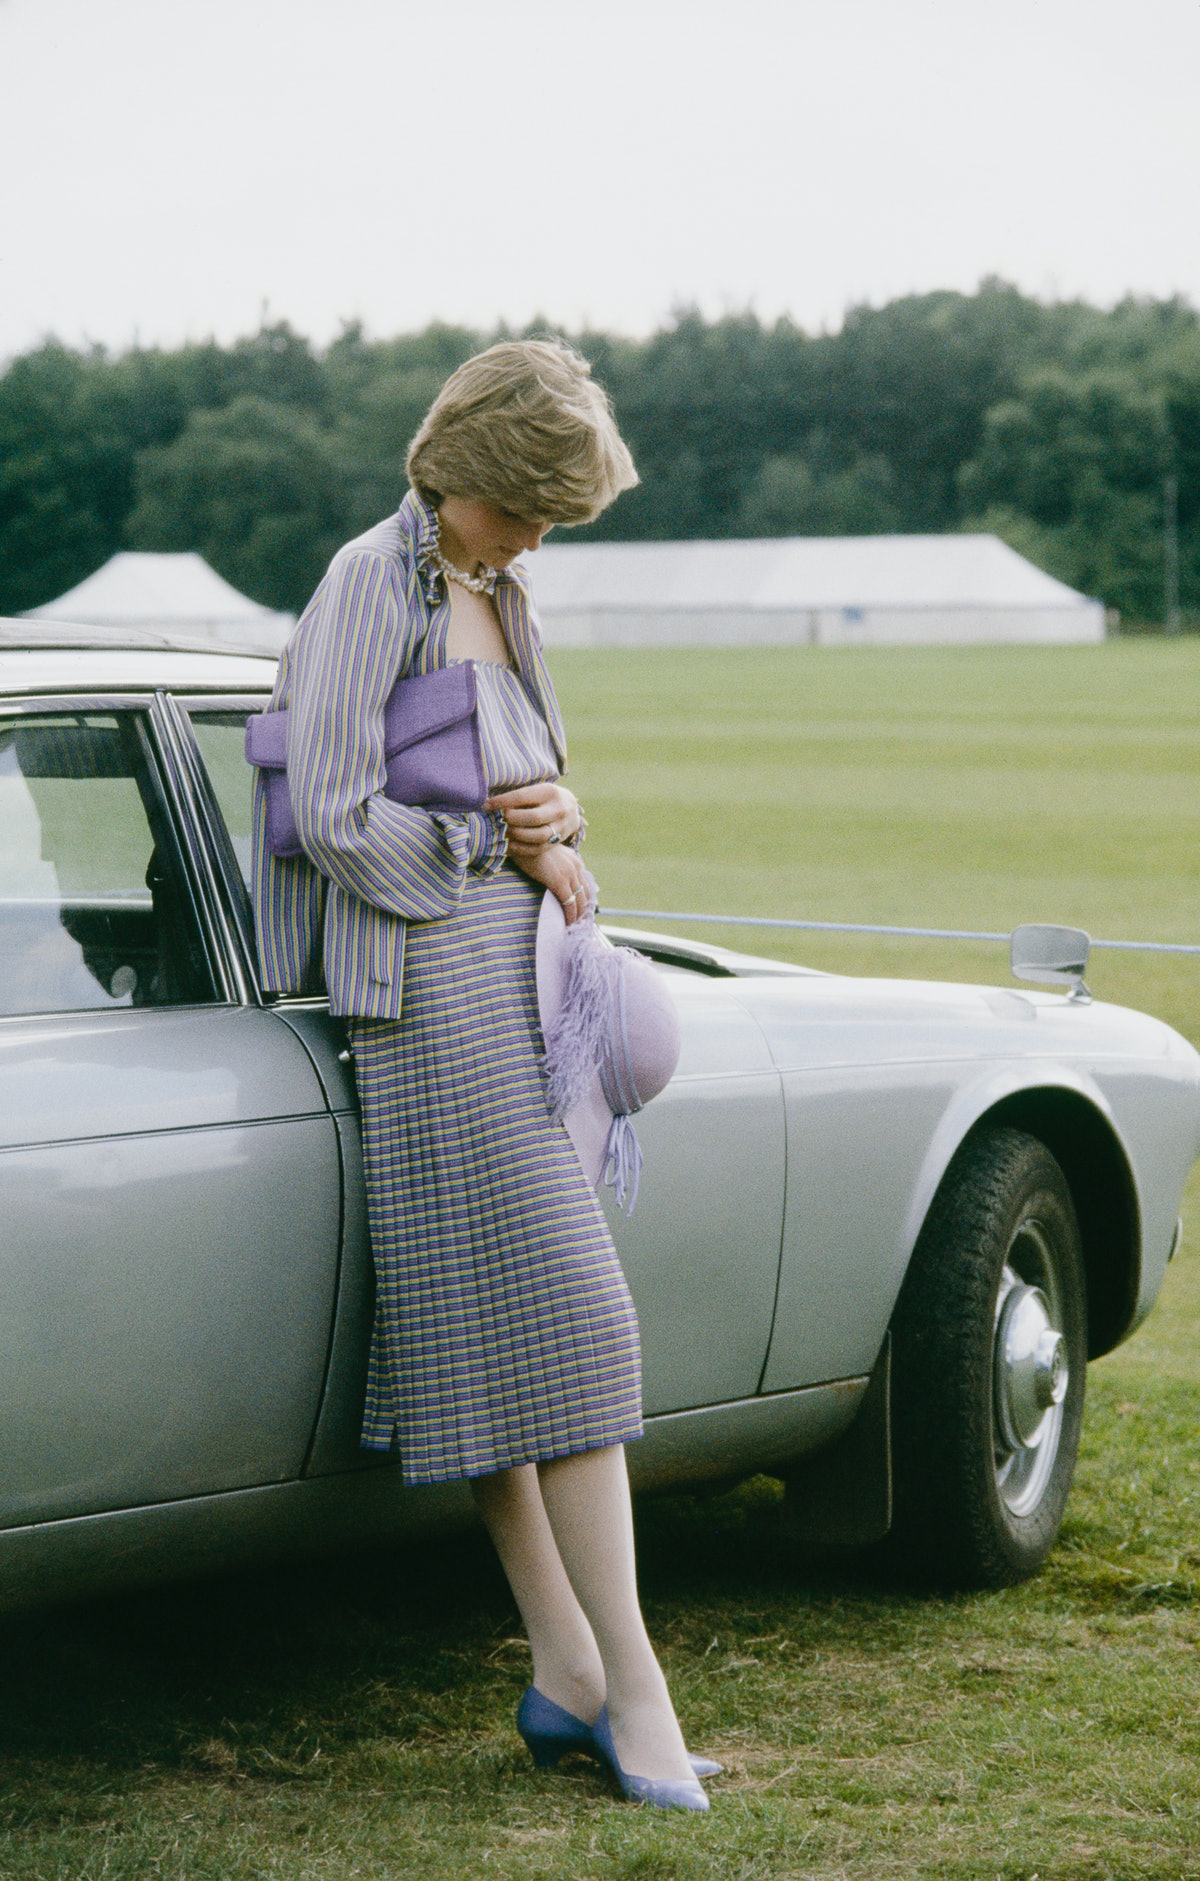 Diana Spencer wearing a lilac ensemble and staring at the ground